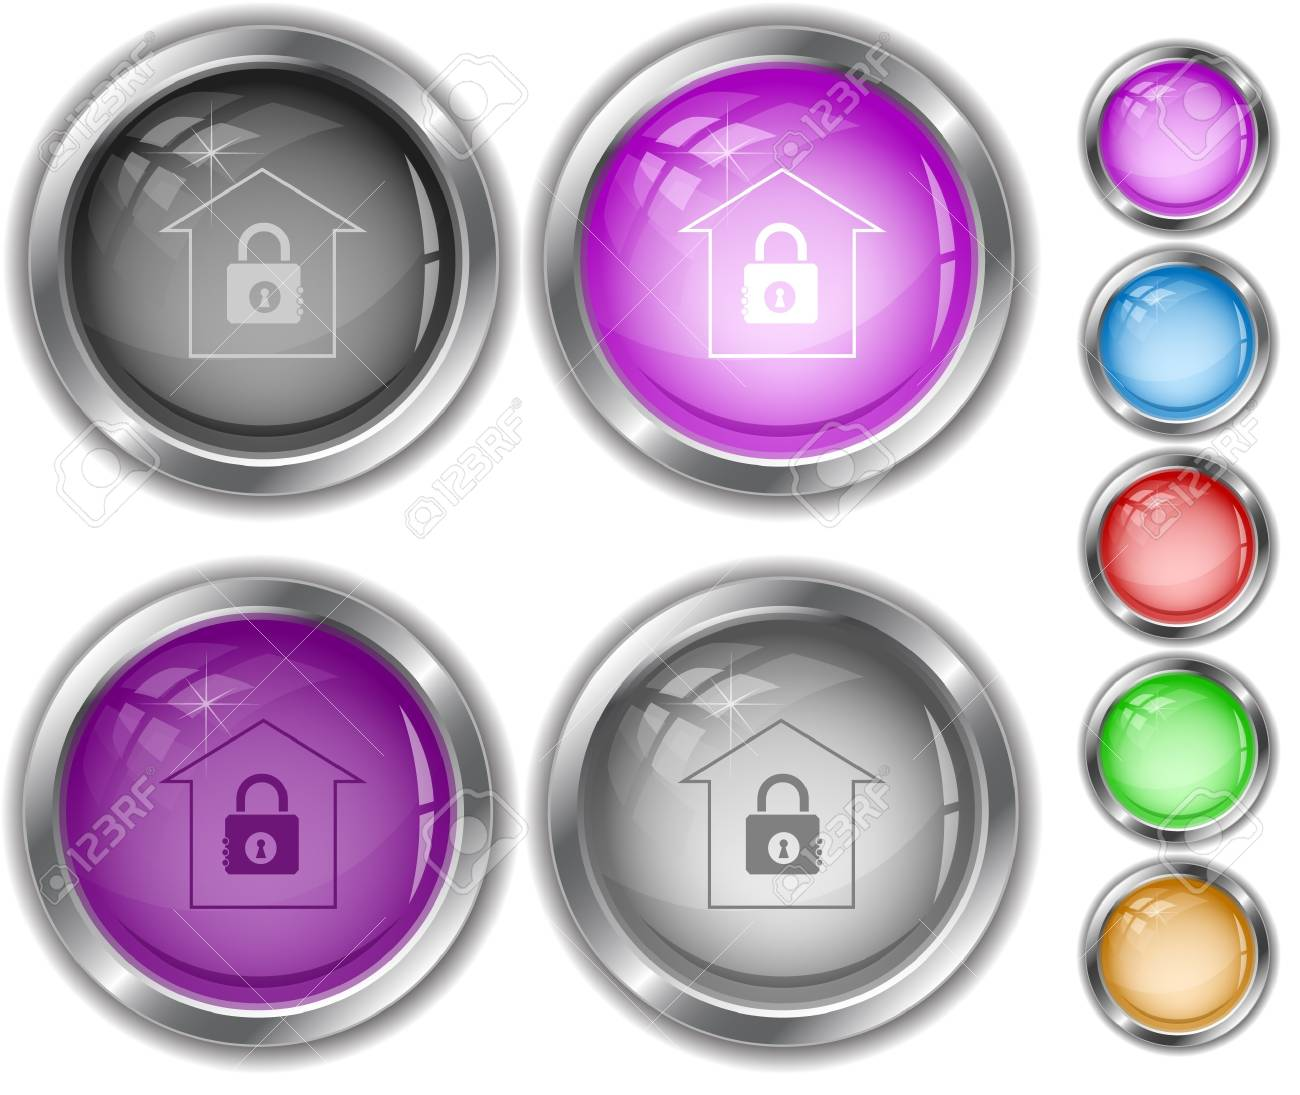 Bank internet buttons. Stock Vector - 7177493